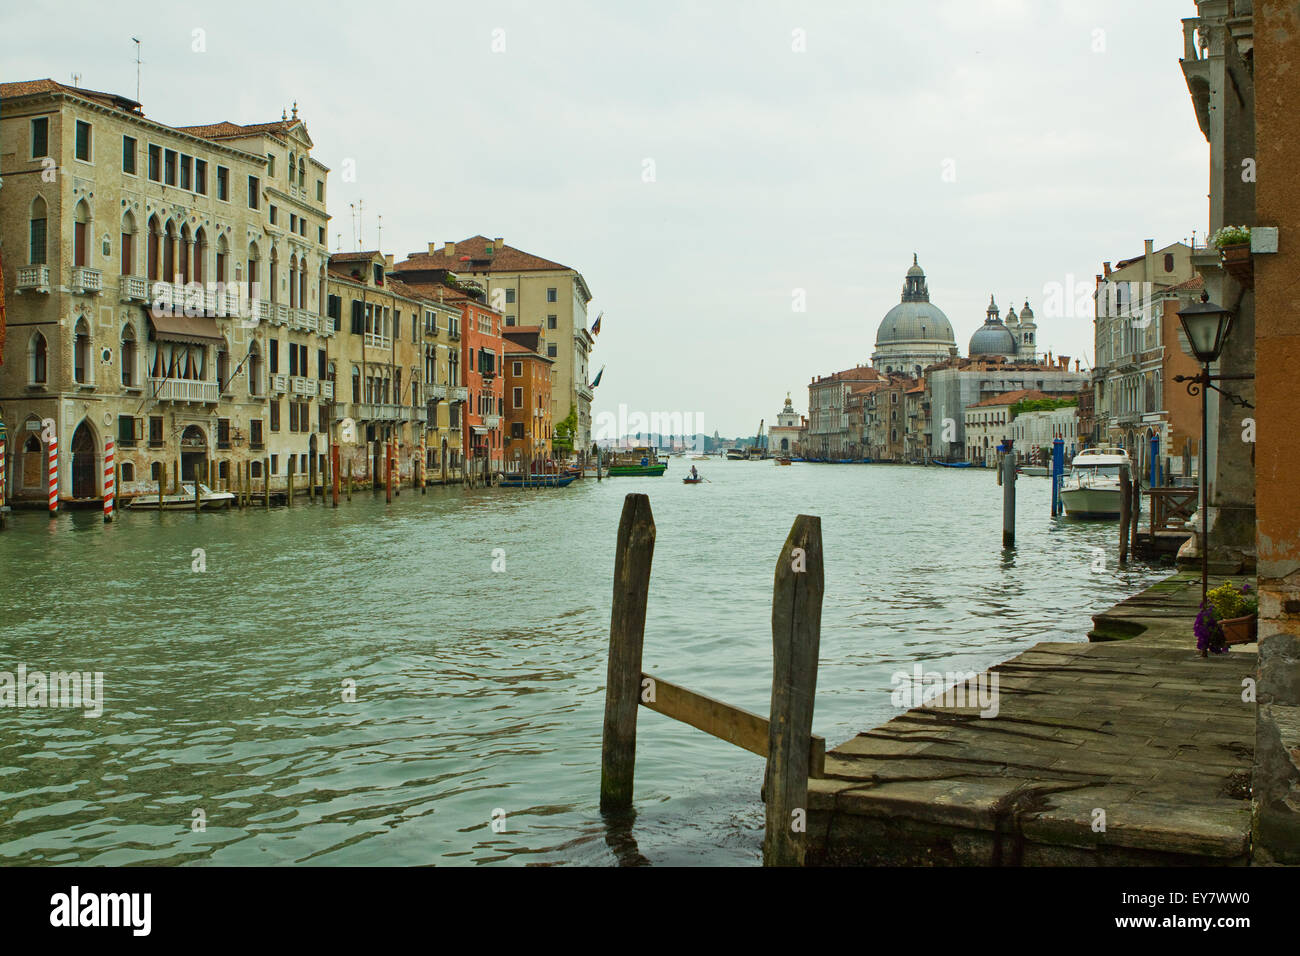 Grand canal taken from underneath the Academia bridge - Stock Image